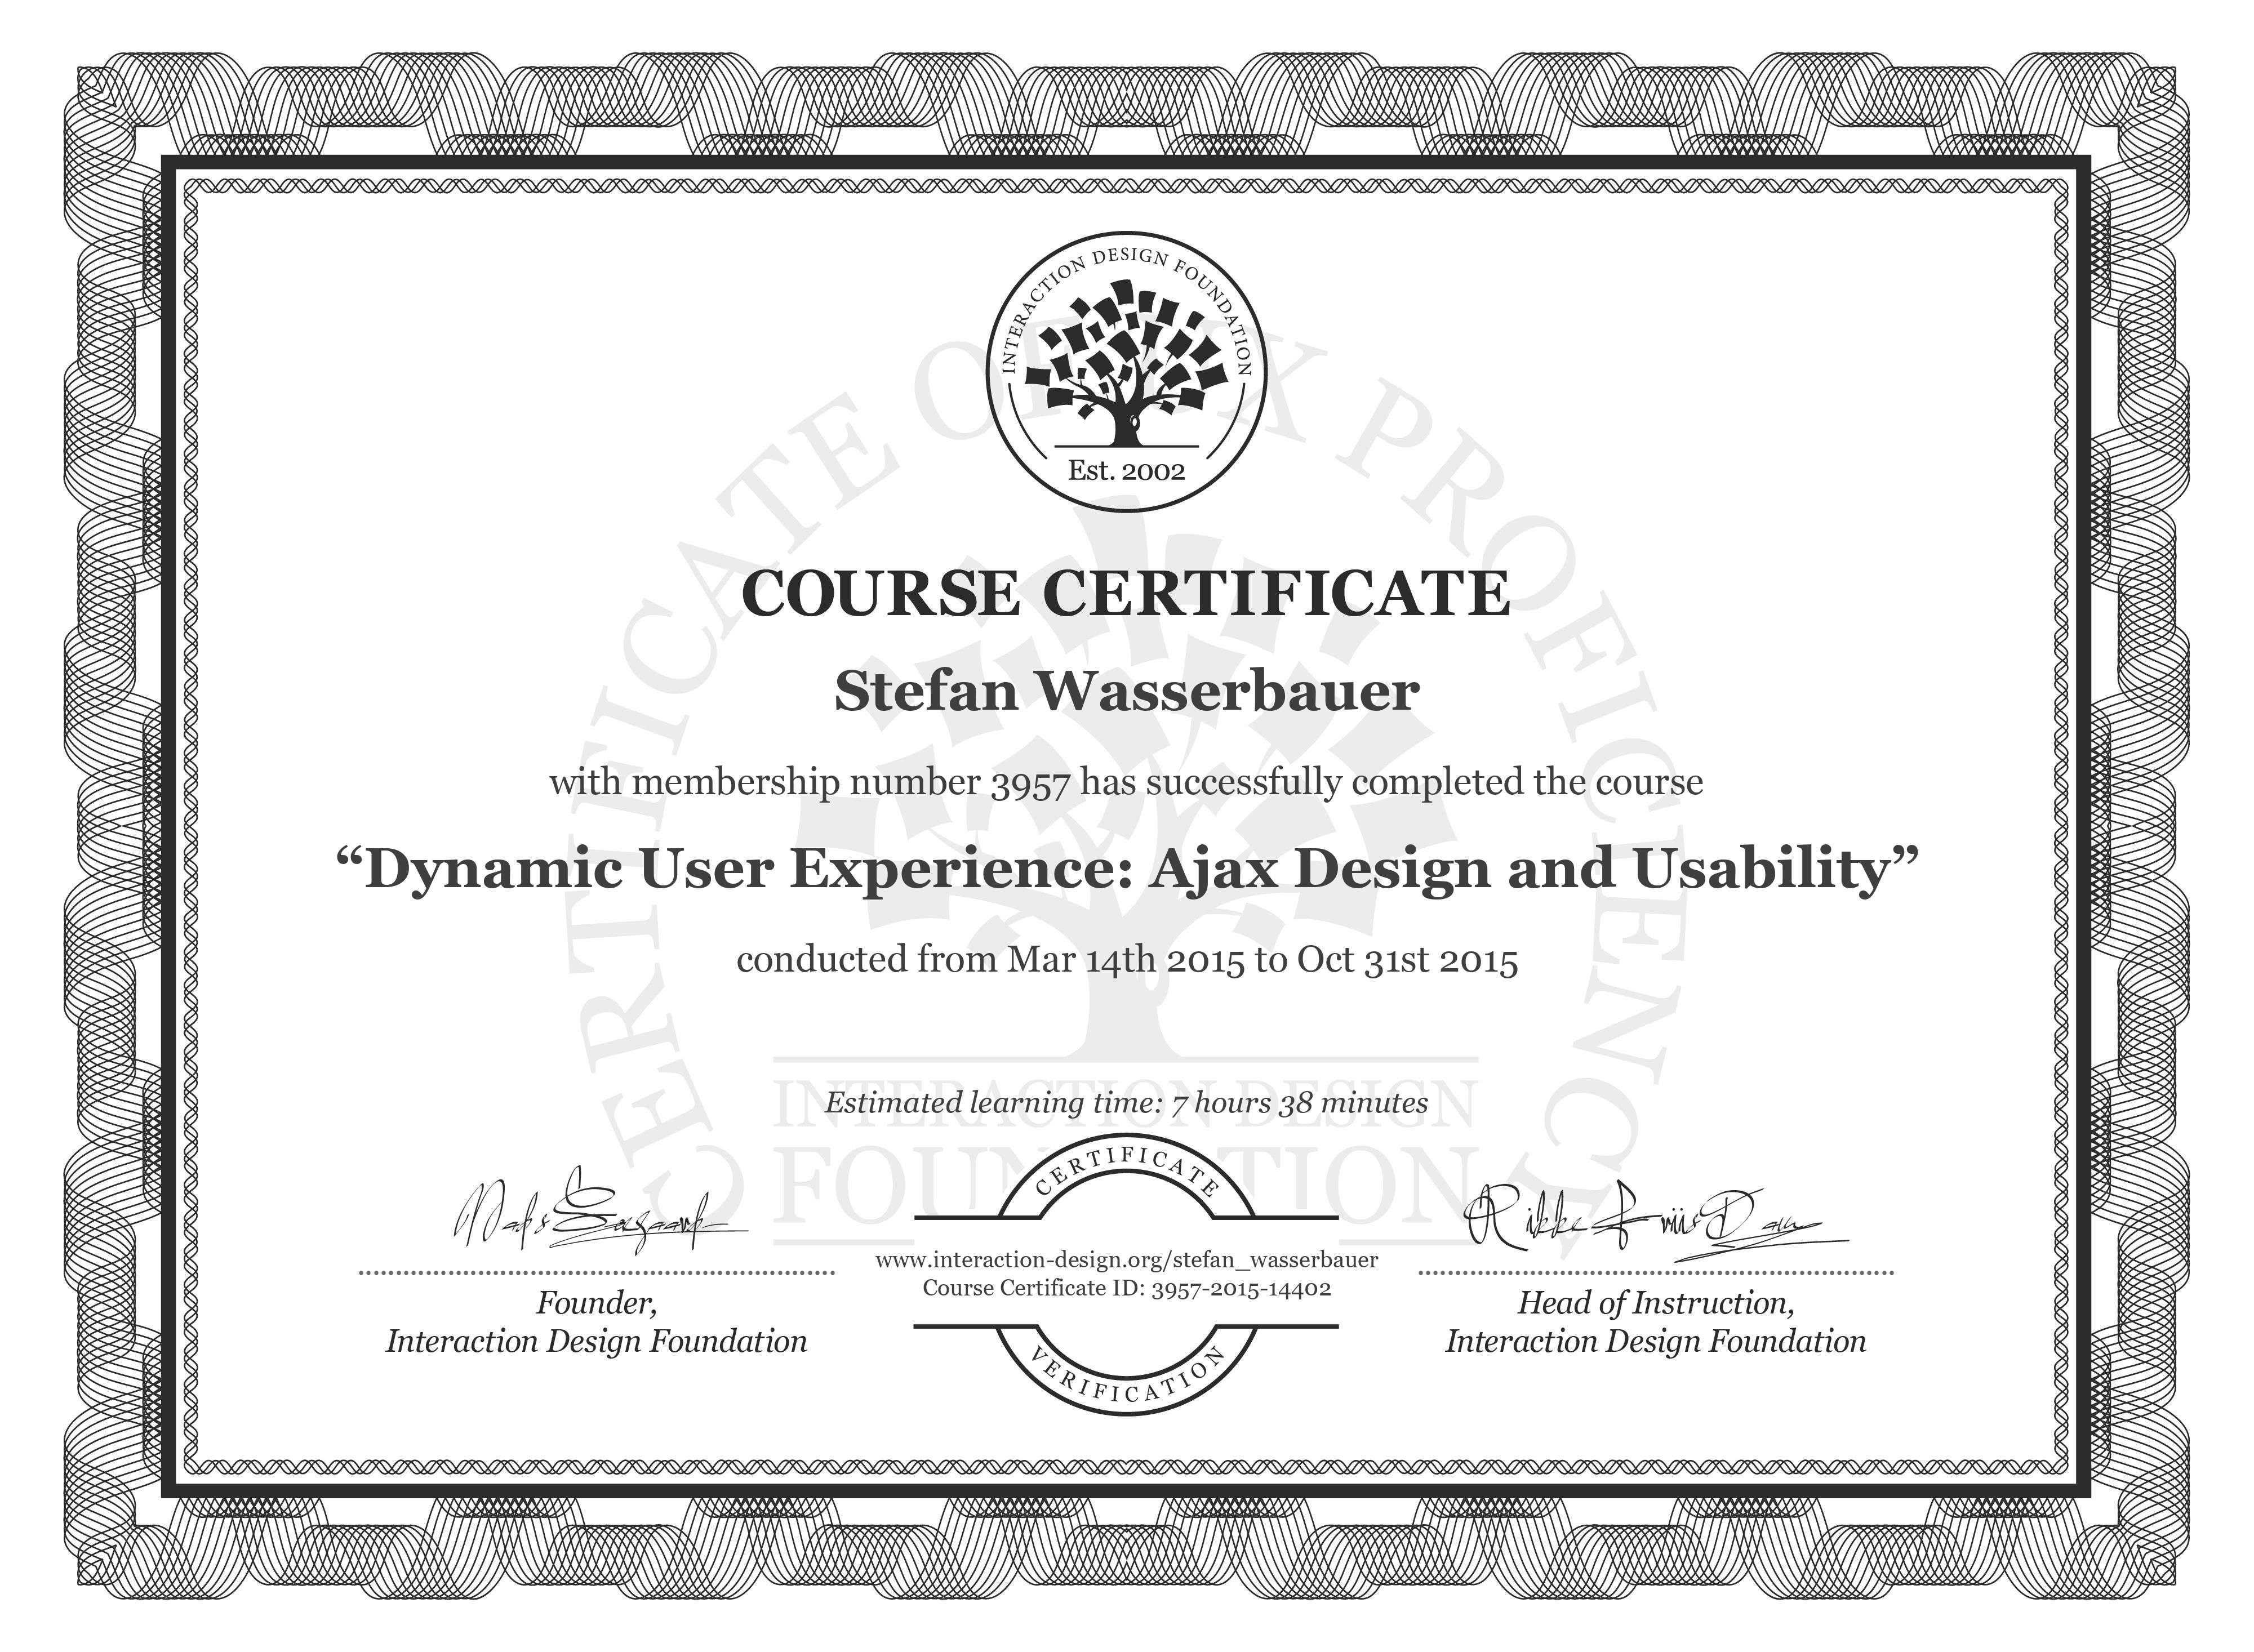 Stefan Wasserbauer's Course Certificate: Dynamic User Experience: Ajax Design and Usability